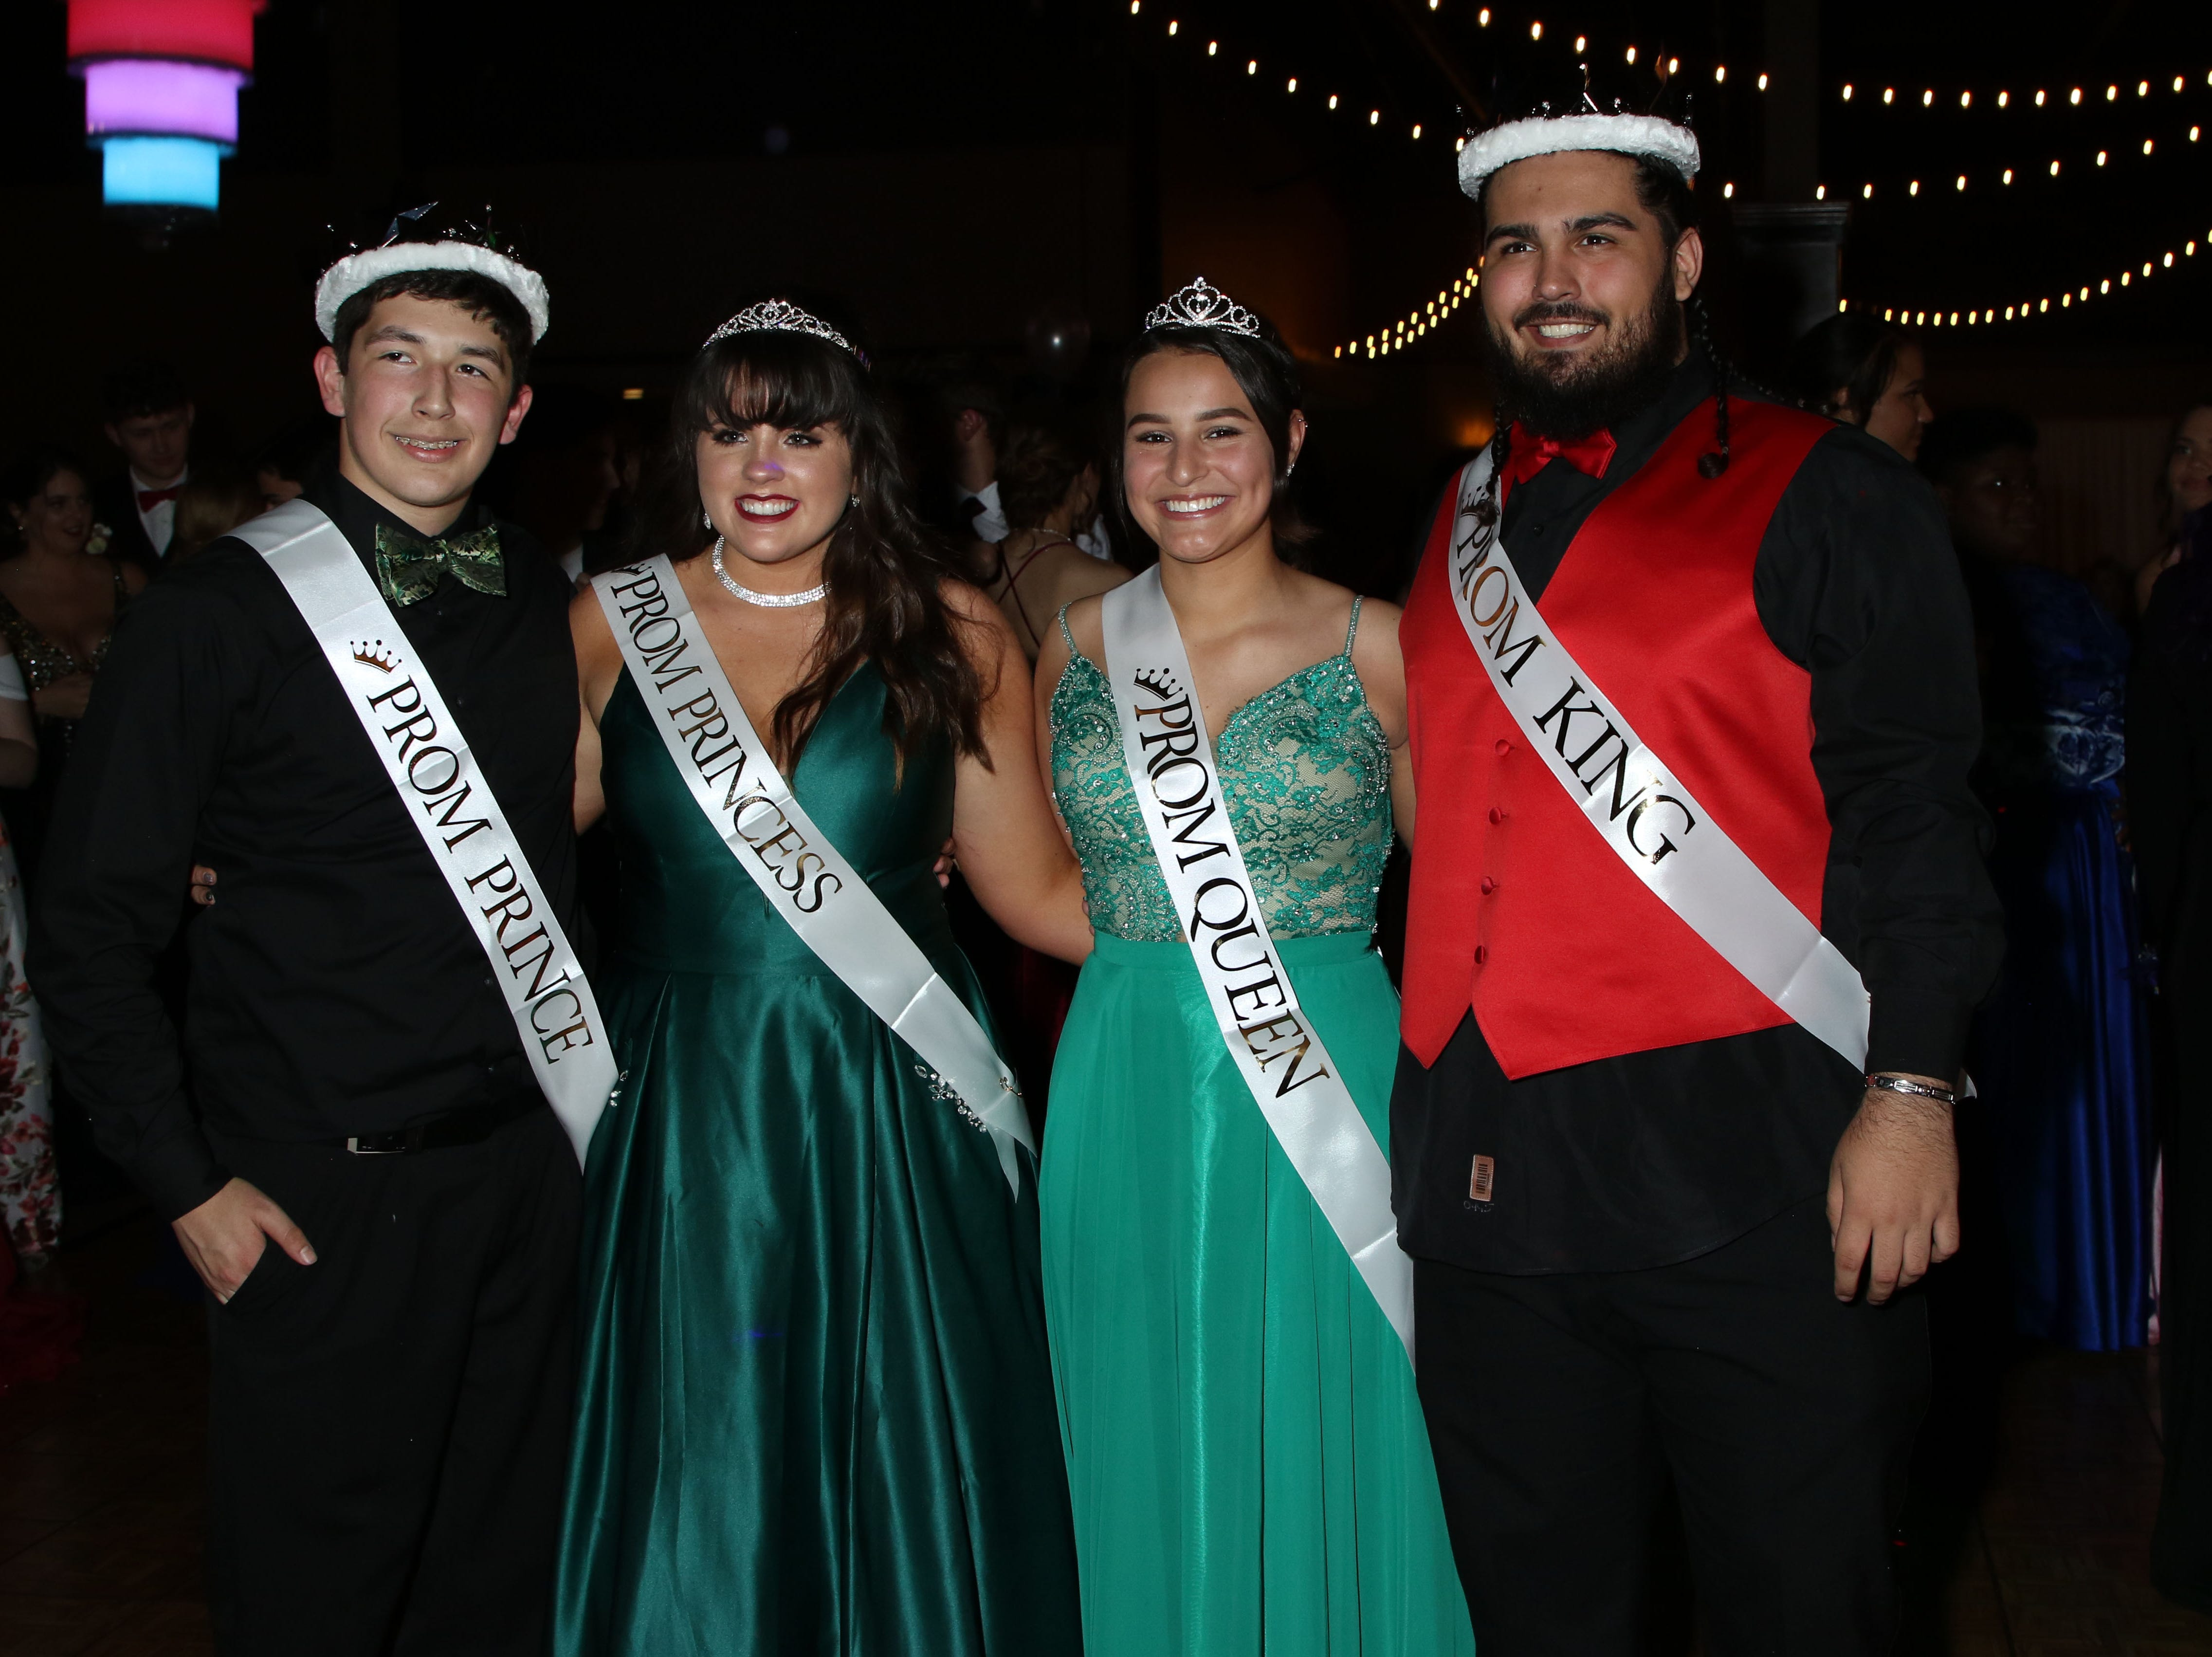 Prince Zayne Manning, Princess Zoe Hines, Queen Marisol Fick, and King Reece Taylor were crowned at Port Clinton's 2019 Prom, held Saturday April 27th at Lyman Harbor in Sandusky.